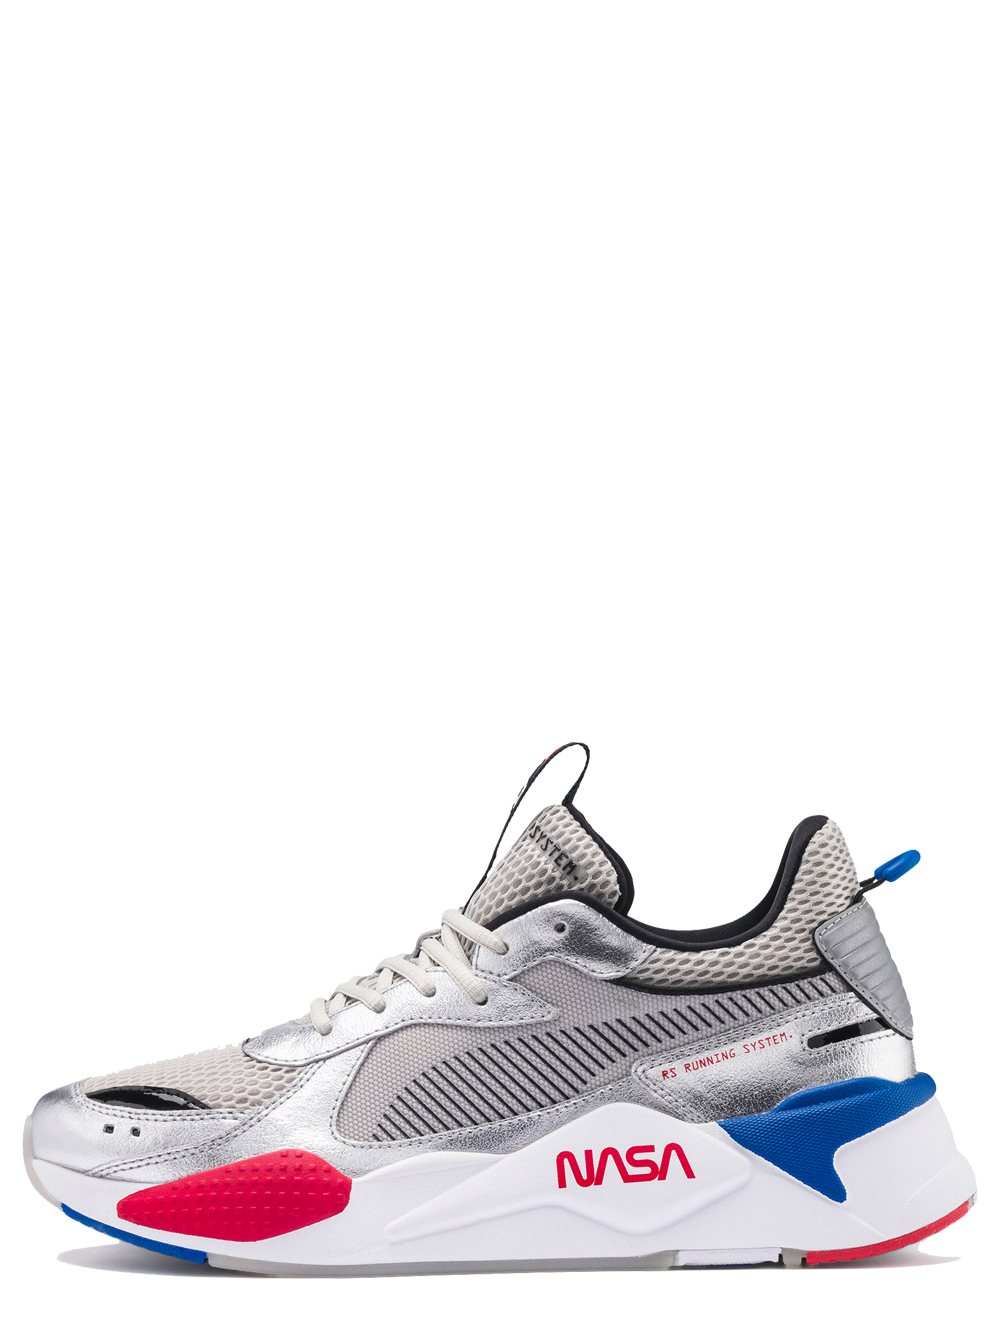 PUMA RS-X SPACE AGENCY SILVER-GRAY-VIOLET